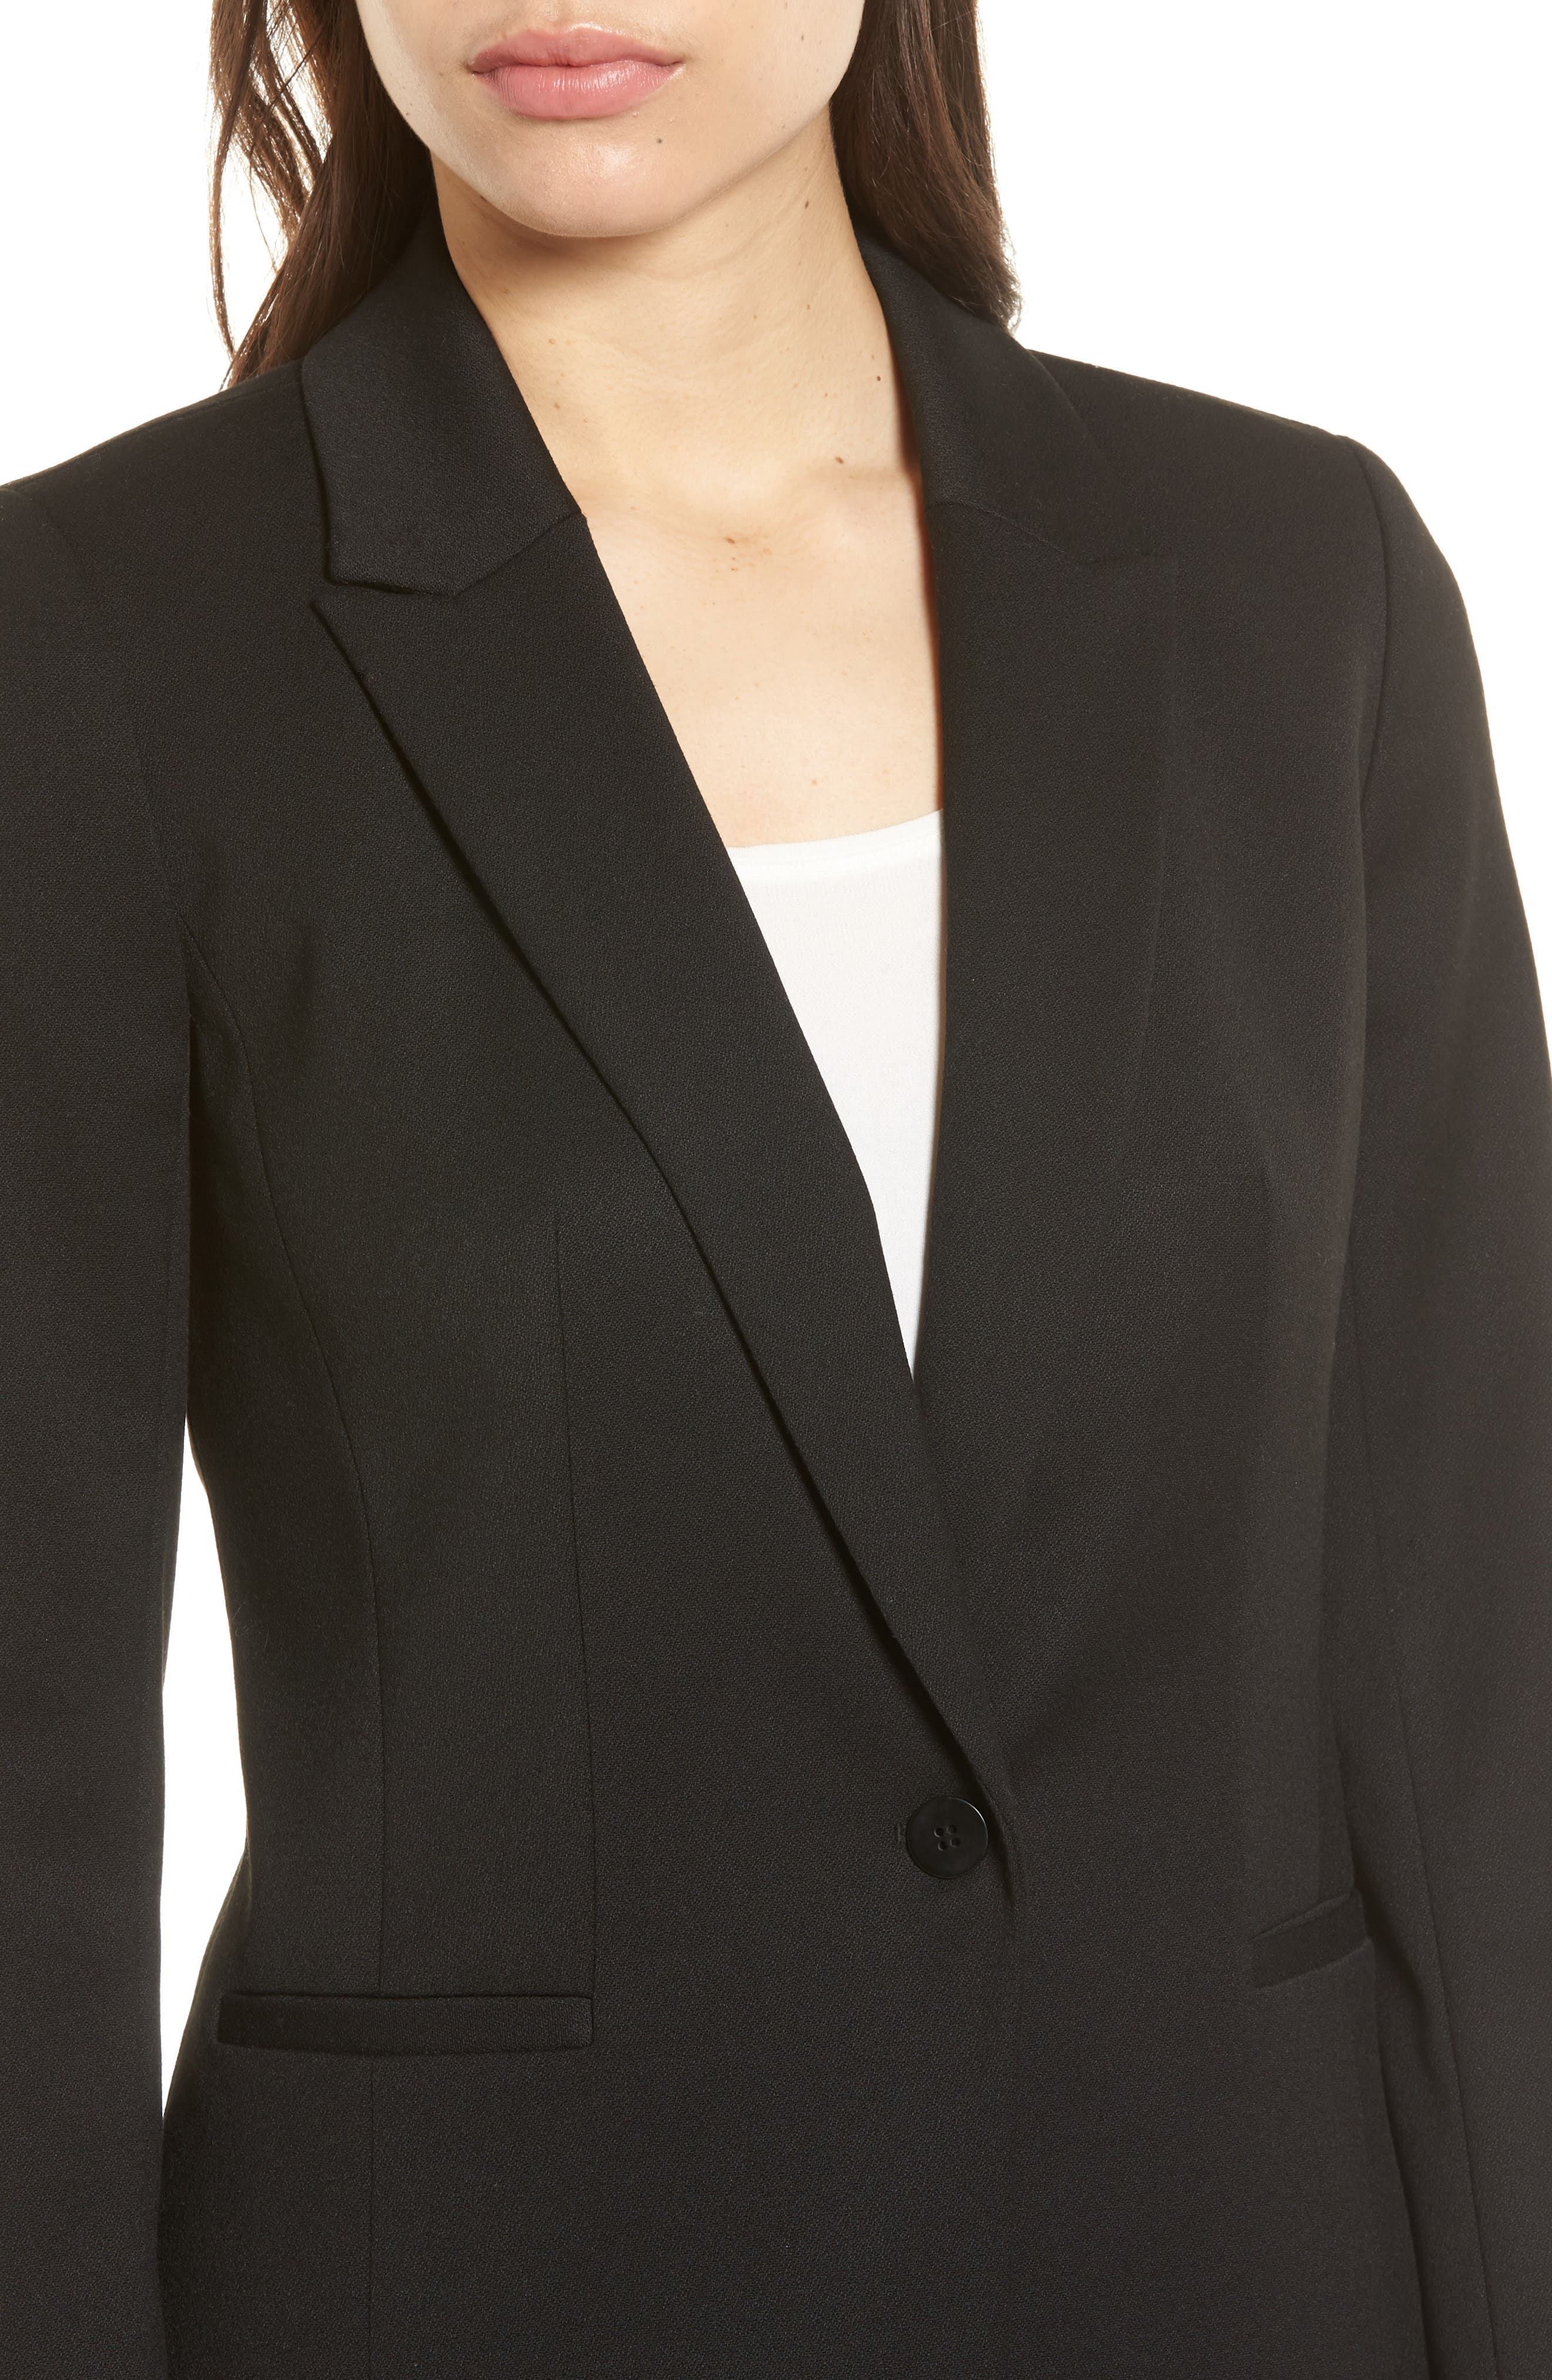 Stretch Crepe Suit Jacket,                             Alternate thumbnail 4, color,                             Black